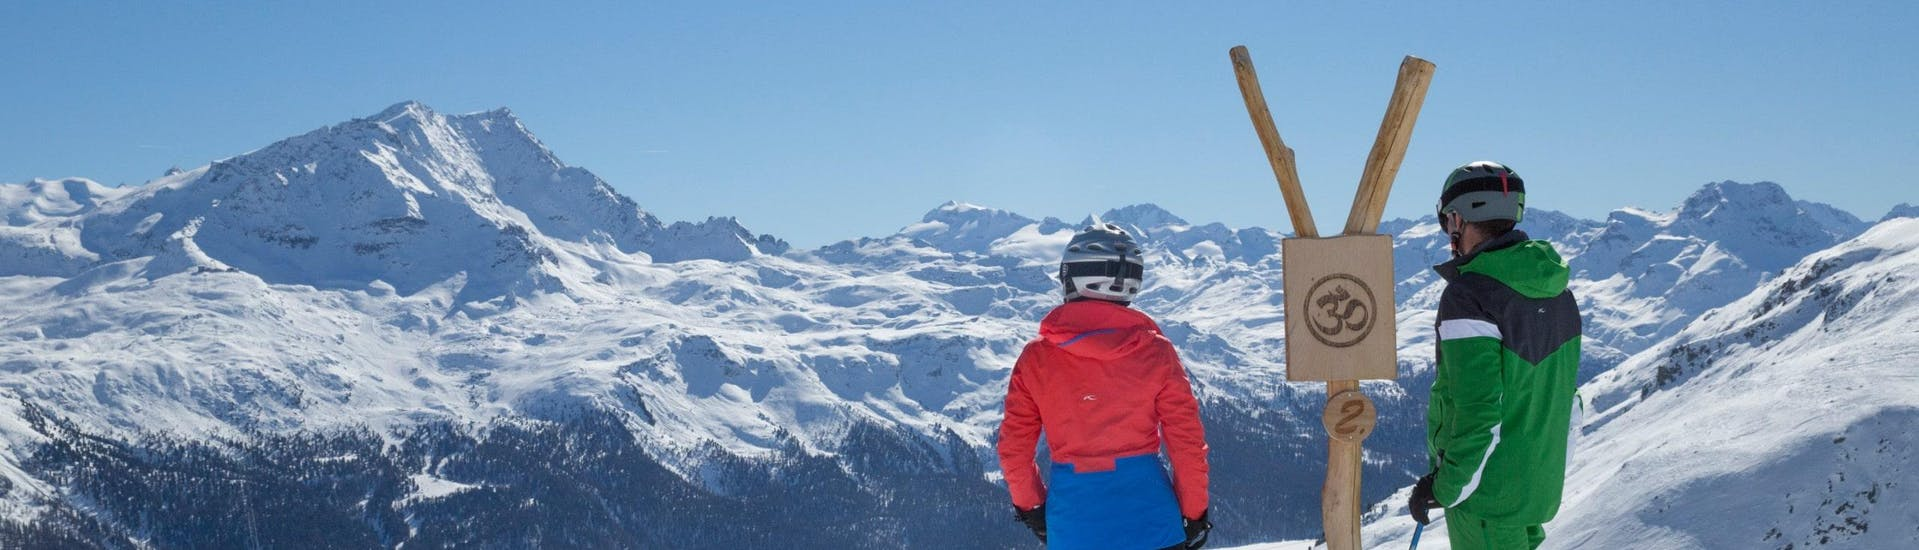 View over the sunny mountain landscape while learning to ski with the ski schools in St. Moritz.